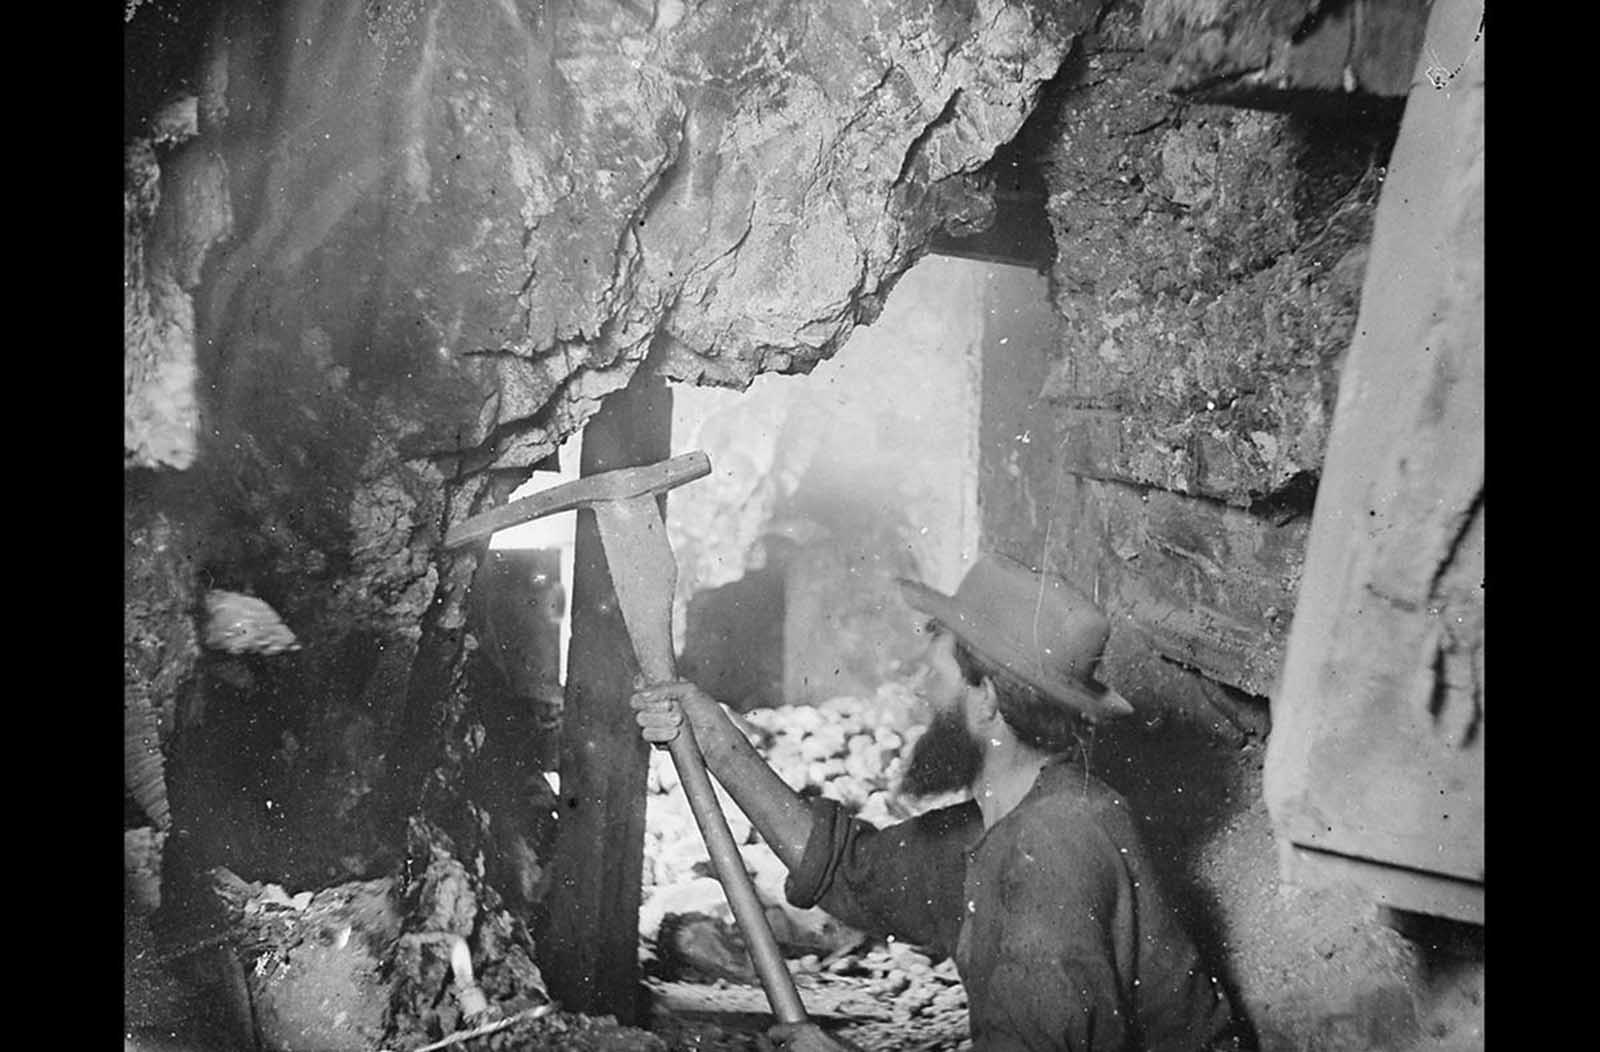 In 1867, O'Sullivan traveled to Virginia City, Nevada to document the activities at the Savage and the Gould and Curry mines on the Comstock Lode, the richest silver deposit in America. Working nine hundred feet underground, lit by an improvised flash -- a burning magnesium wire, O'Sullivan photographed the miners in tunnels, shafts, and lifts.